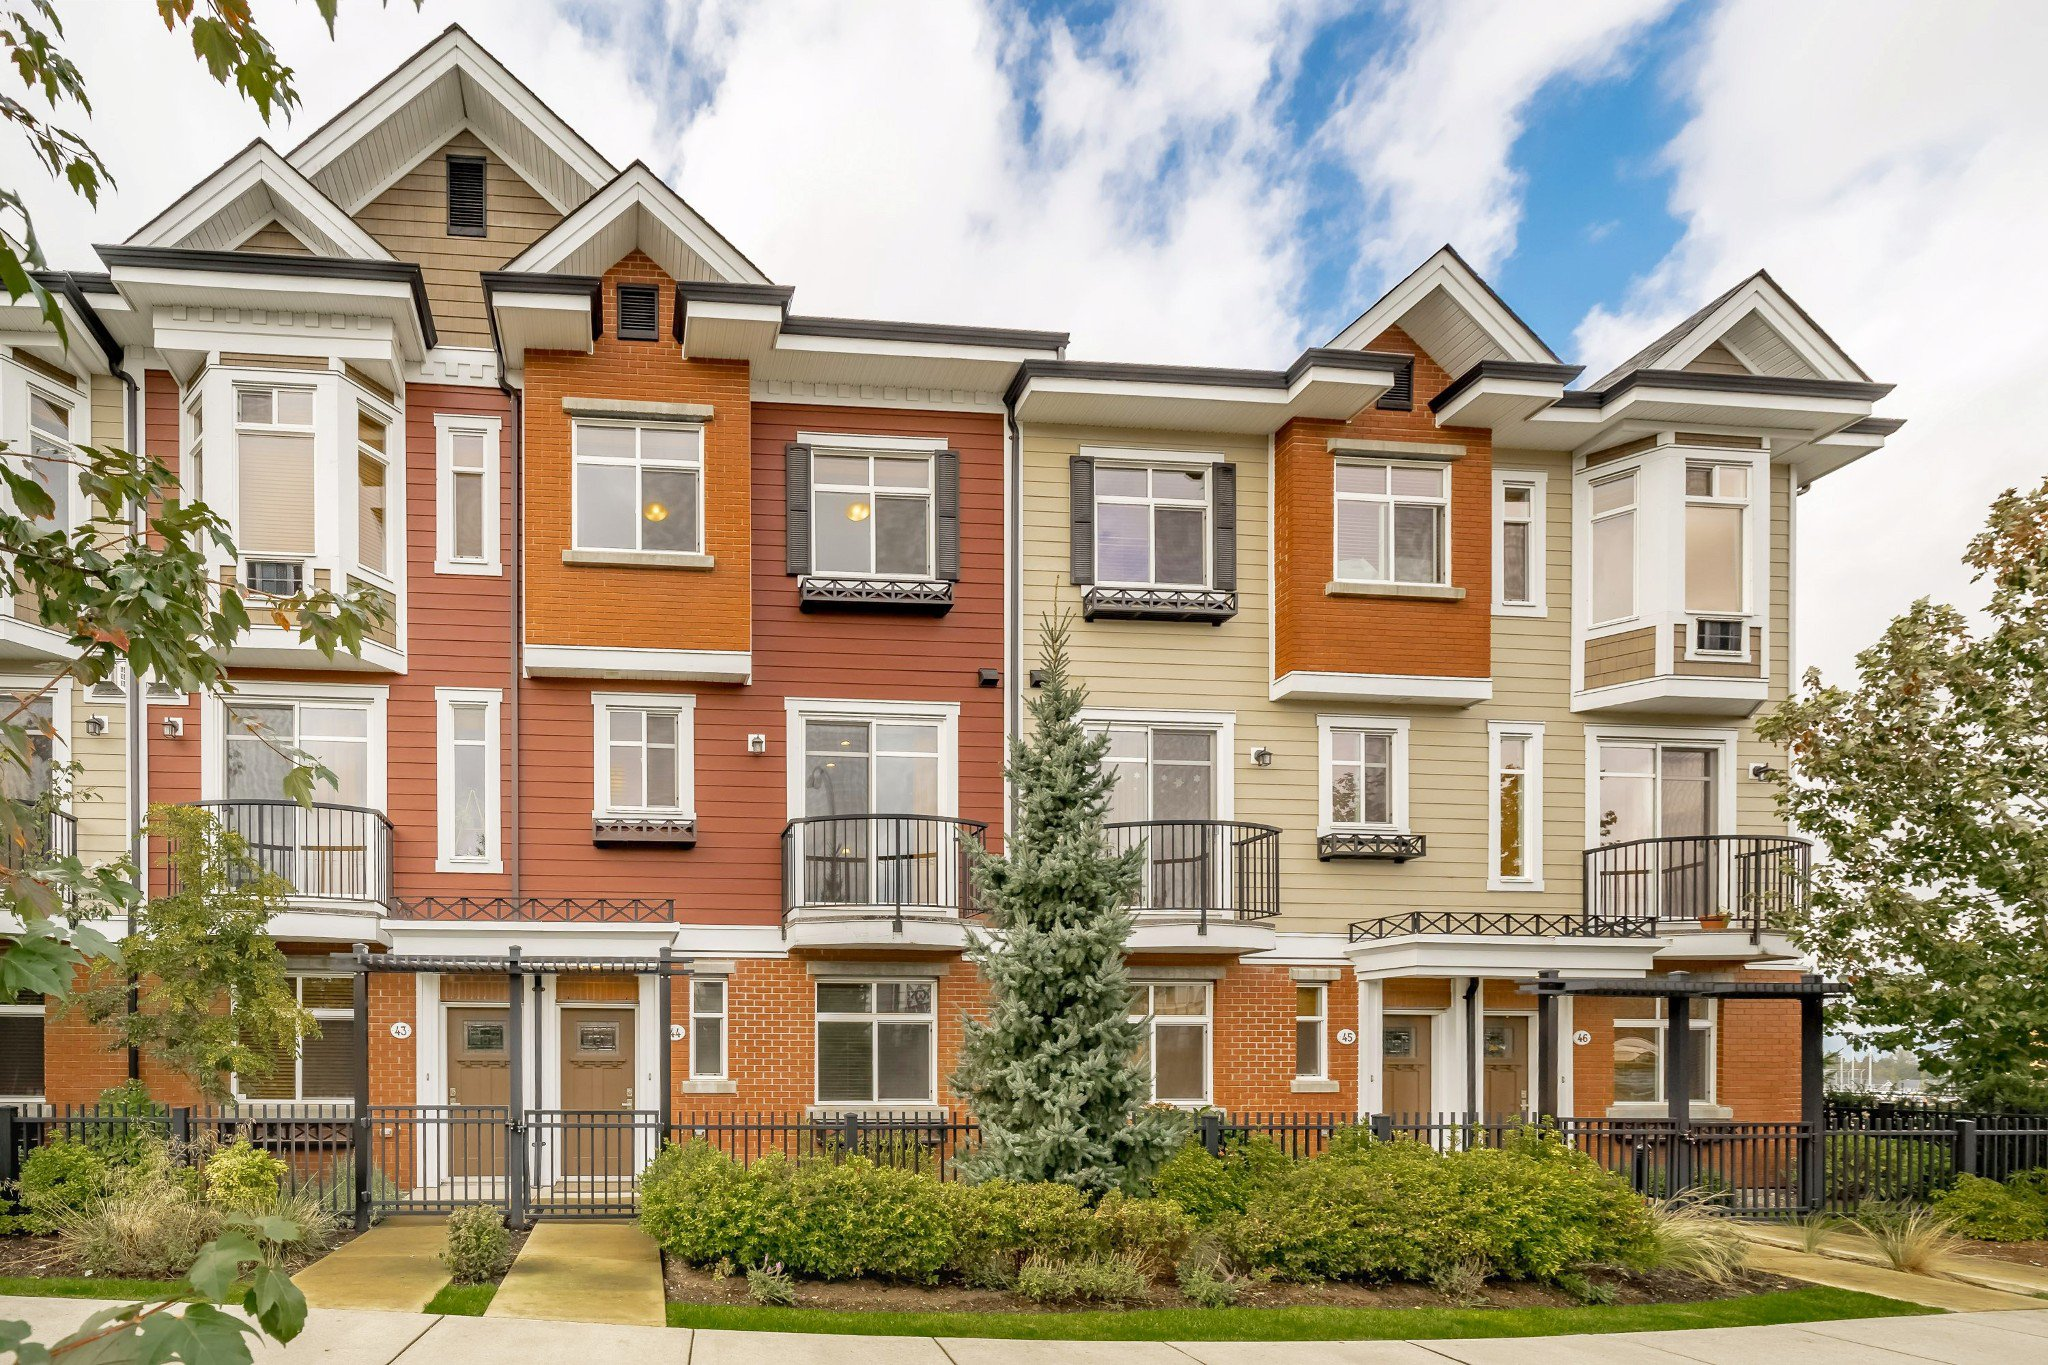 "Main Photo: 44 8068 207 Street in Langley: Willoughby Heights Townhouse for sale in ""Willoughby"" : MLS®# R2410149"